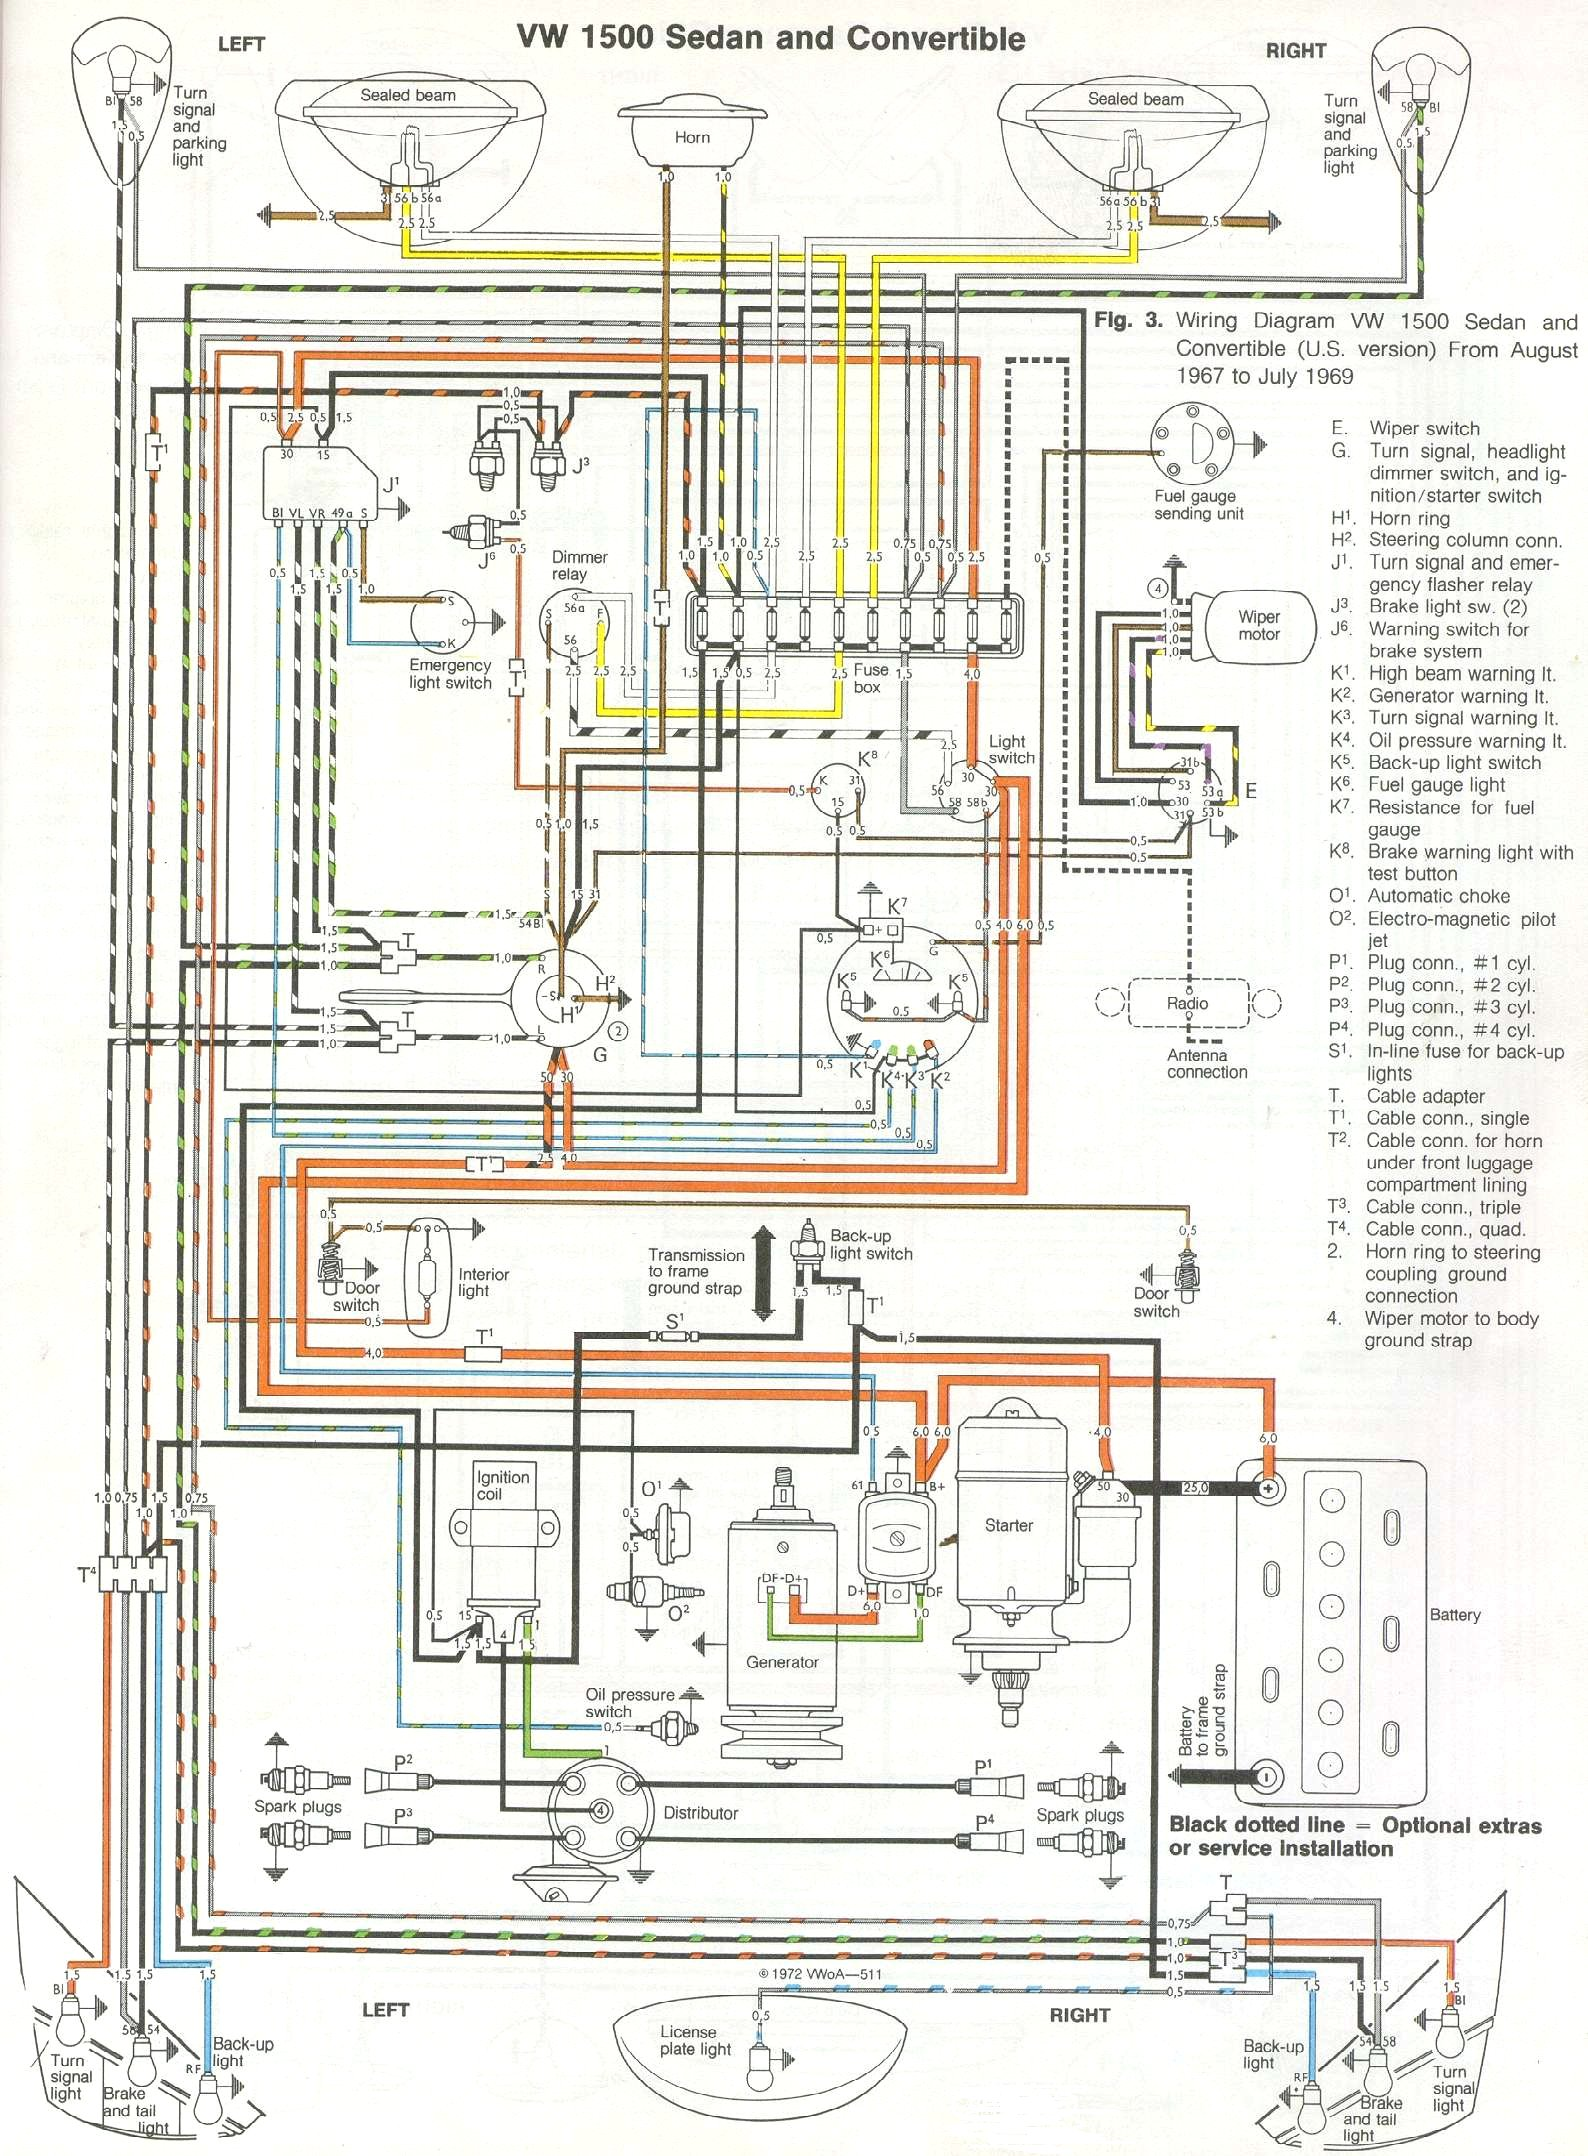 1969 71 beetle wiring diagram thegoldenbug com 1974 super beetle wiring diagram 1969 vw beetle wiring diagram #1